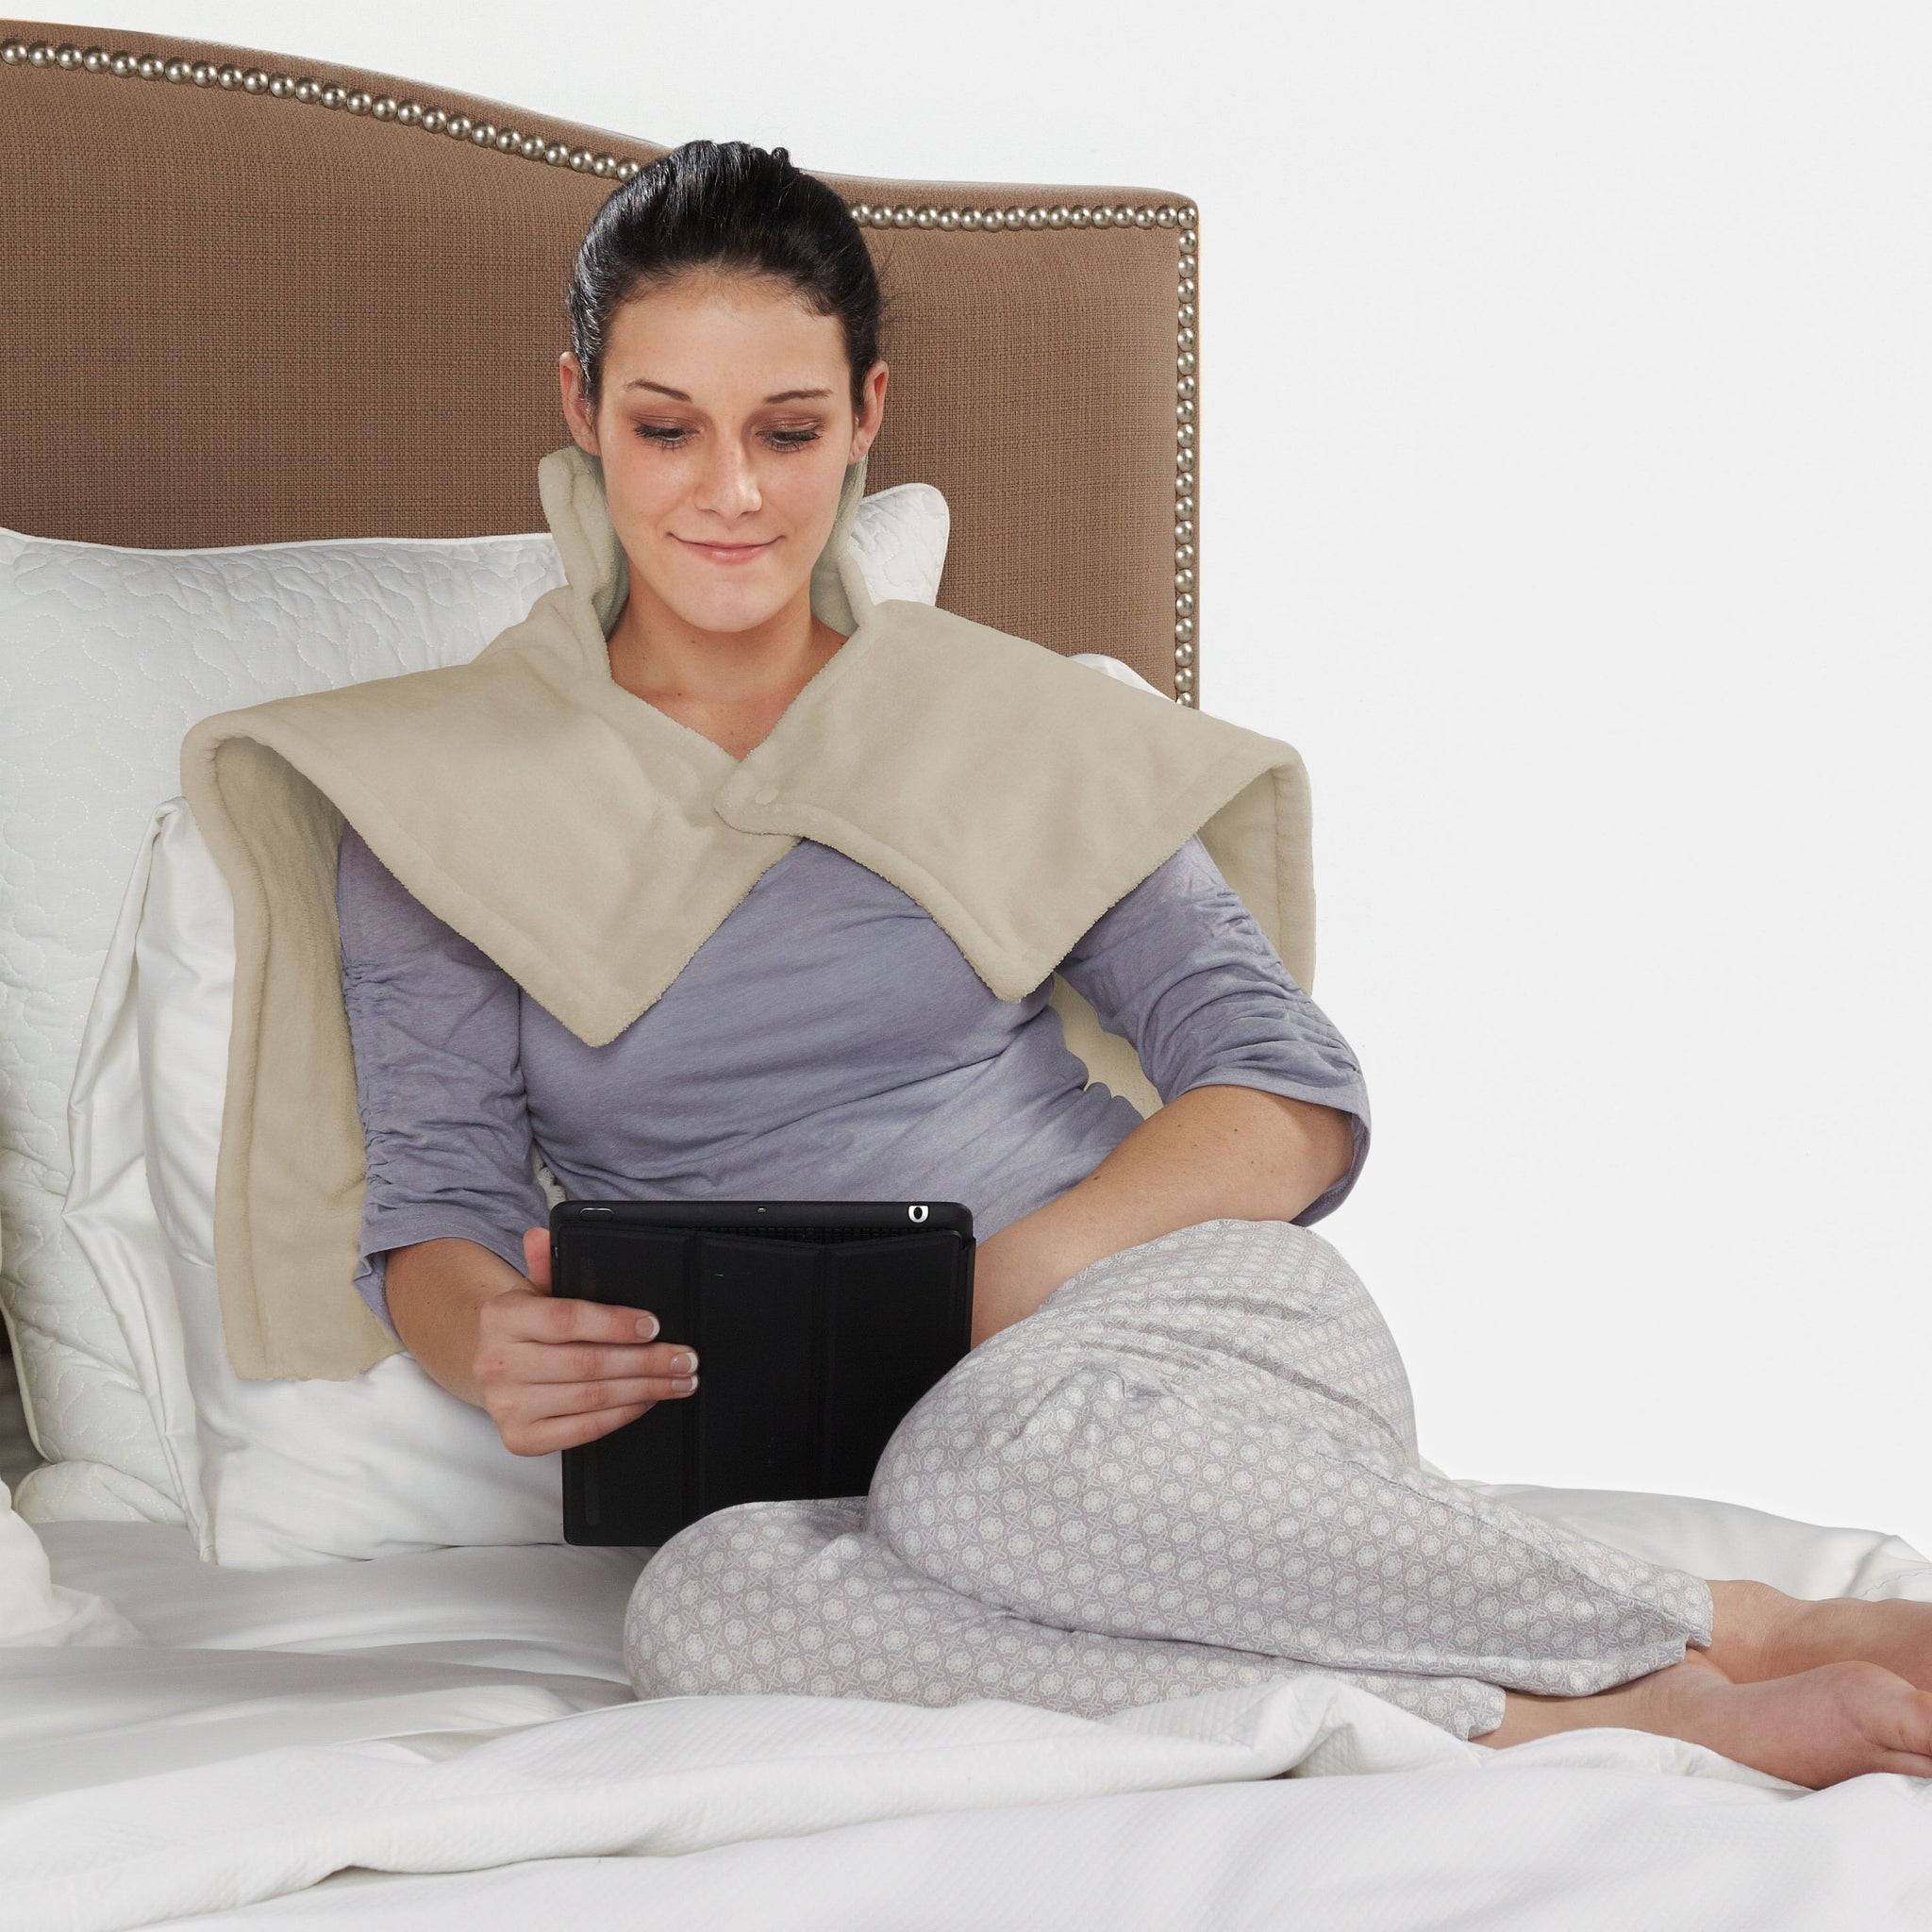 Wellrest Neck & Back Warmer